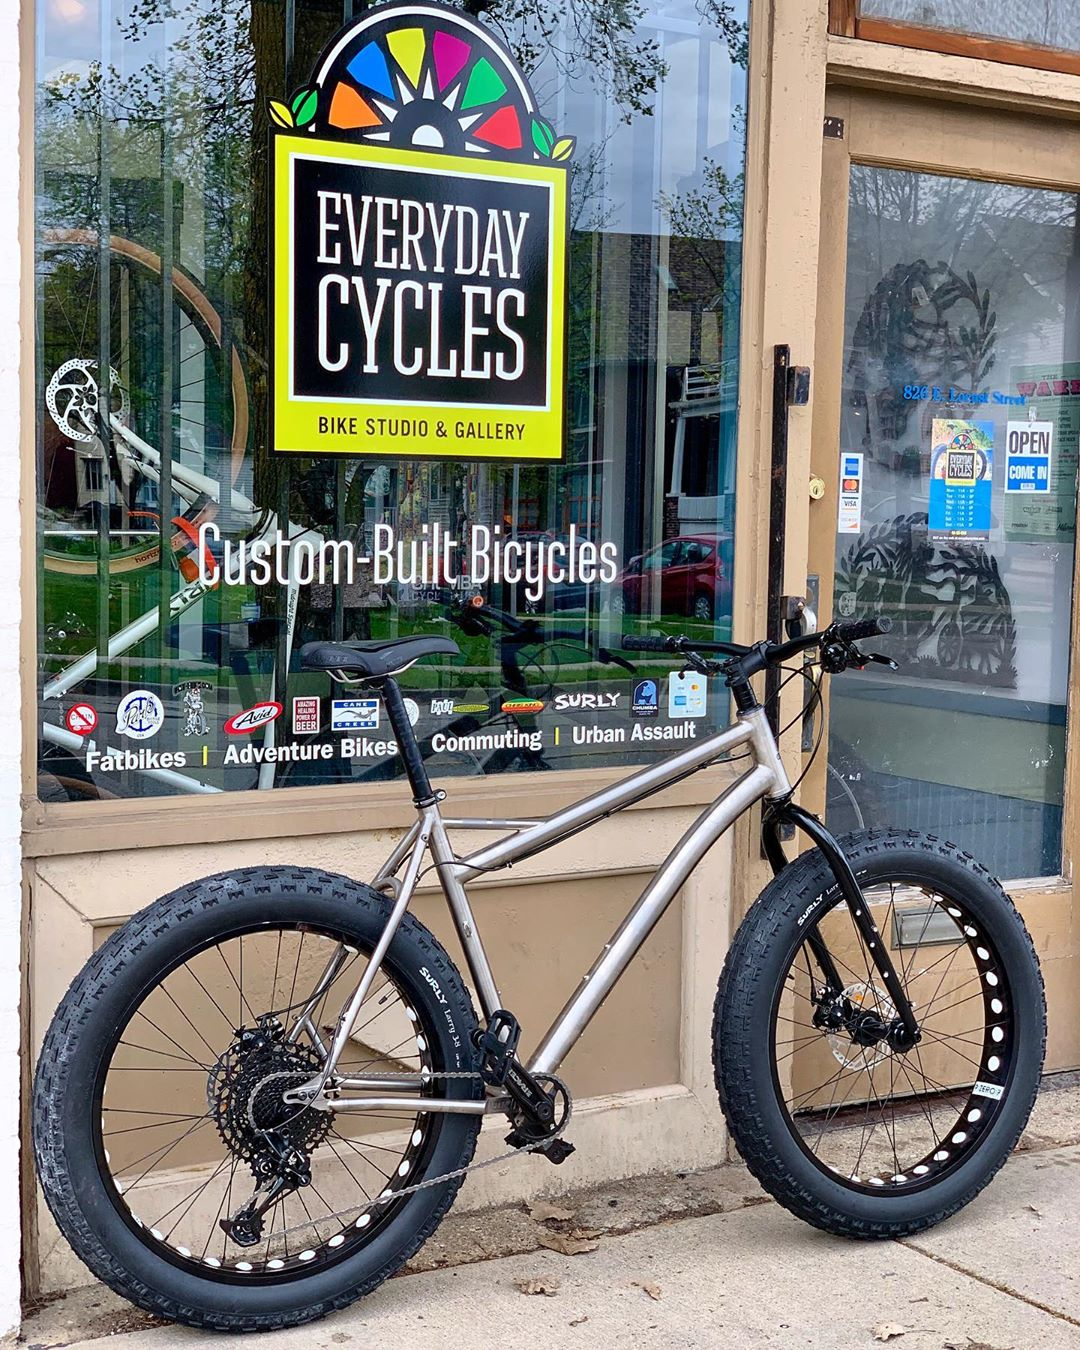 e9d830754fb Bike shop guide - OnMilwaukee